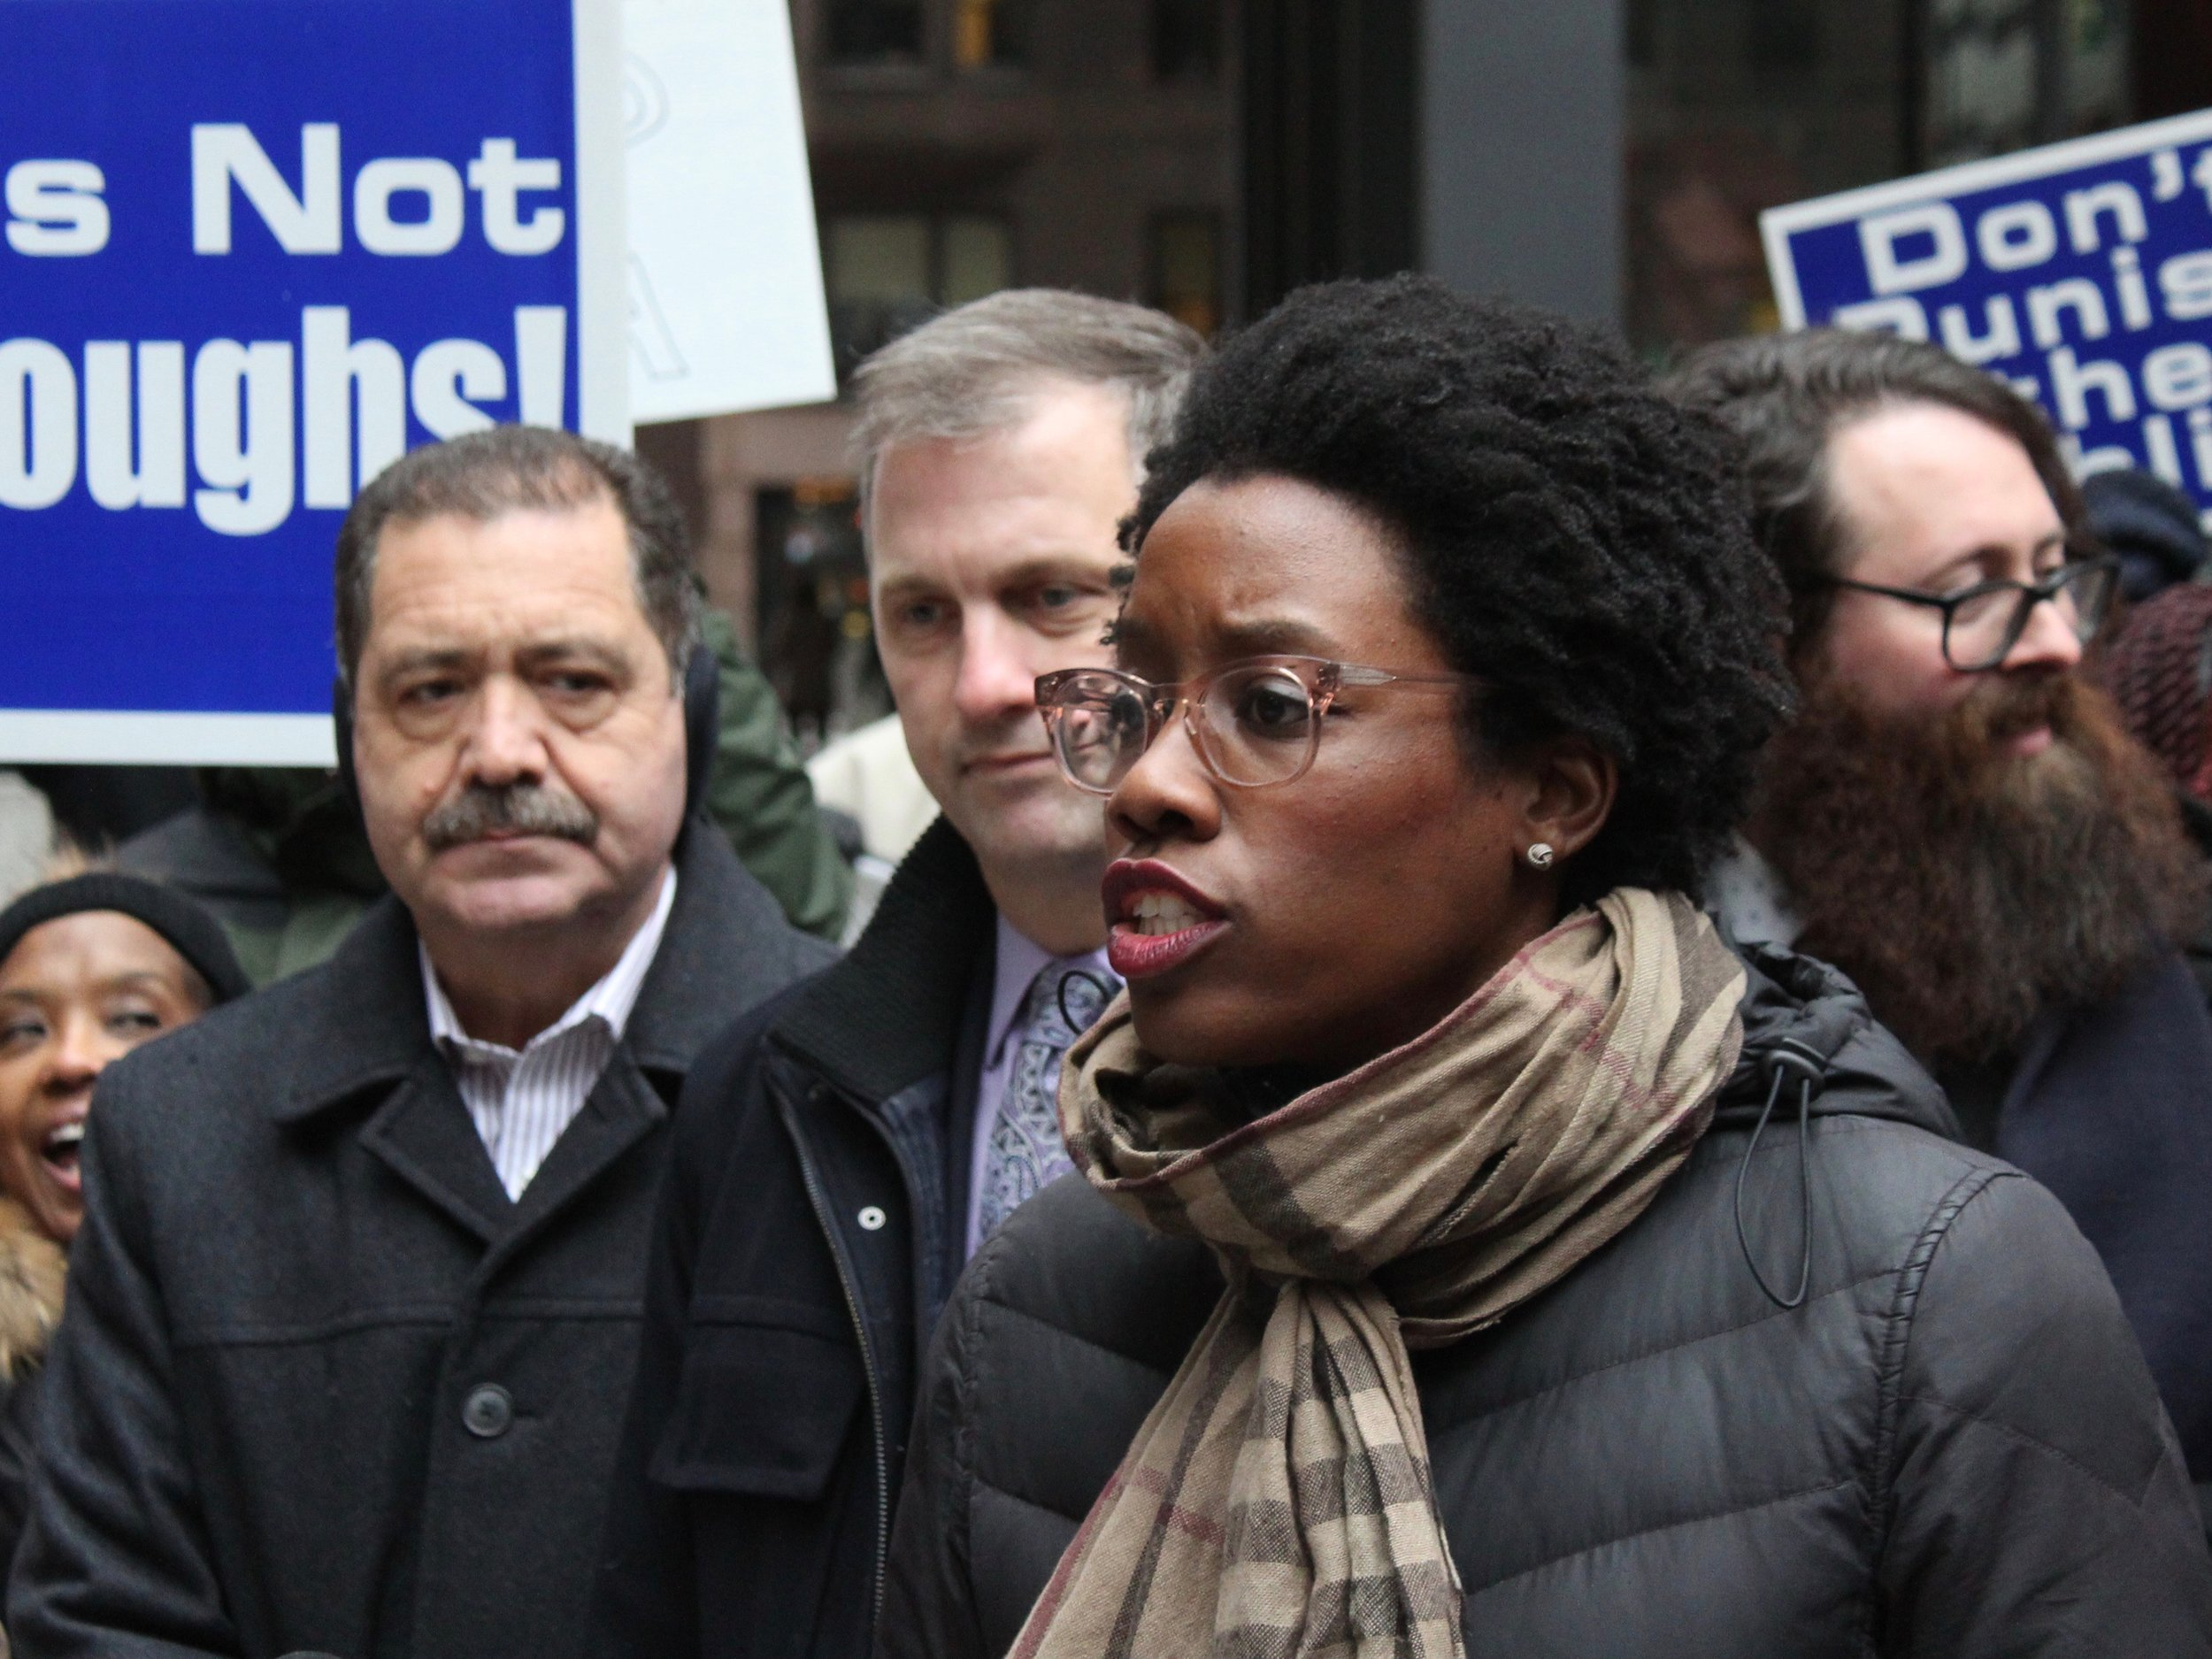 U.S. Rep. Lauren Underwood, a former nurse, joined other members of the Illinois congressional delegation in urging alternatives to the use of carcinogenic ethylene oxide in sterilizing medical supplies. (One Illinois/Ted Cox)